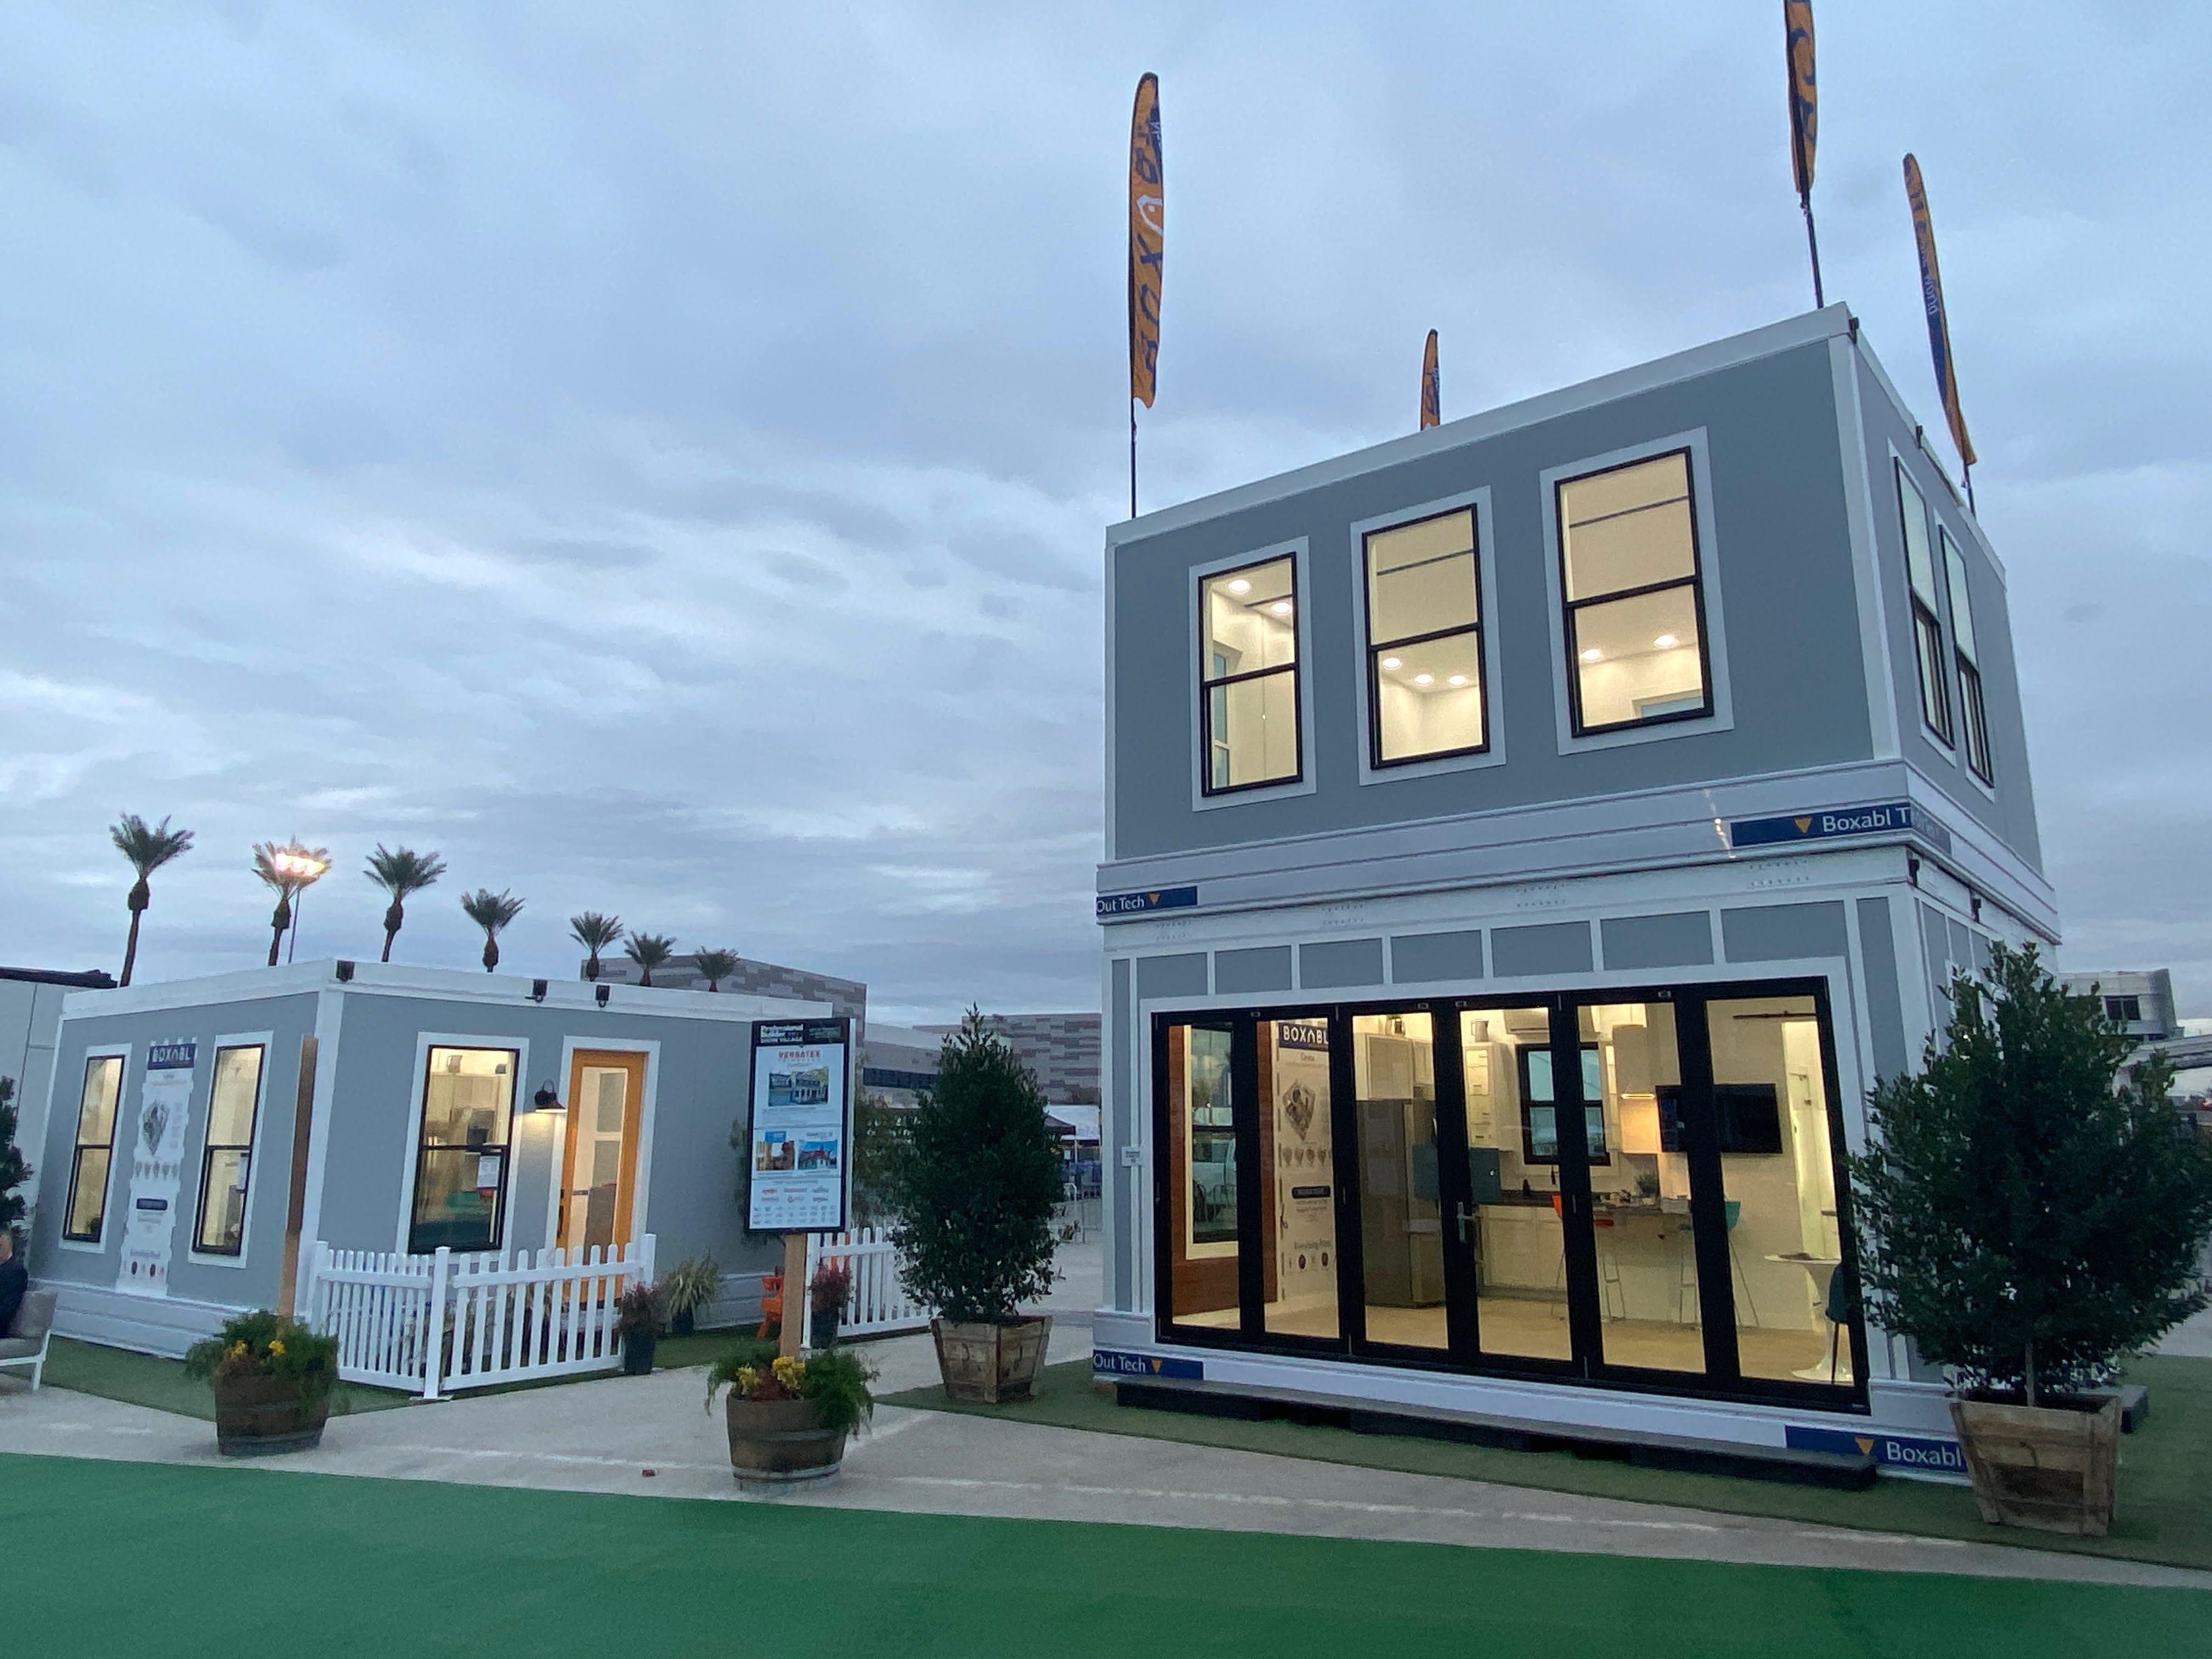 The Boxabl Casita in a two-story configuration in a parking lot